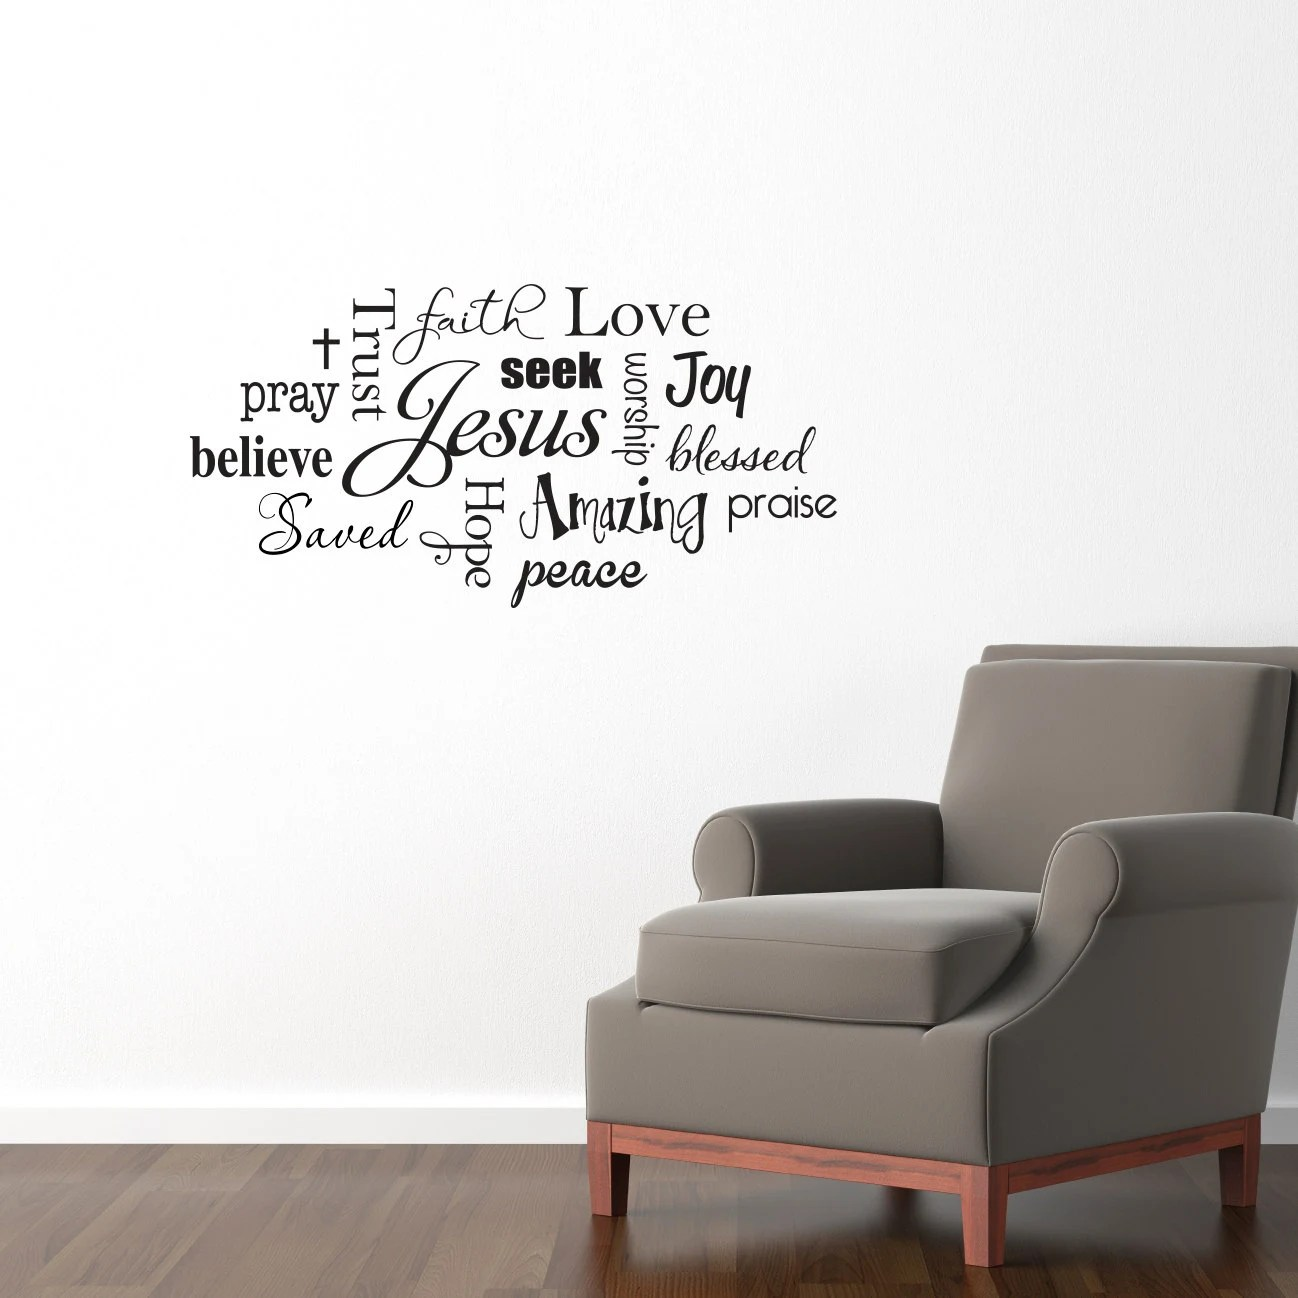 Jesus Christ 3d Wallpaper Christian Wall Decal Jesus Subway Wall Art Sticker Praise